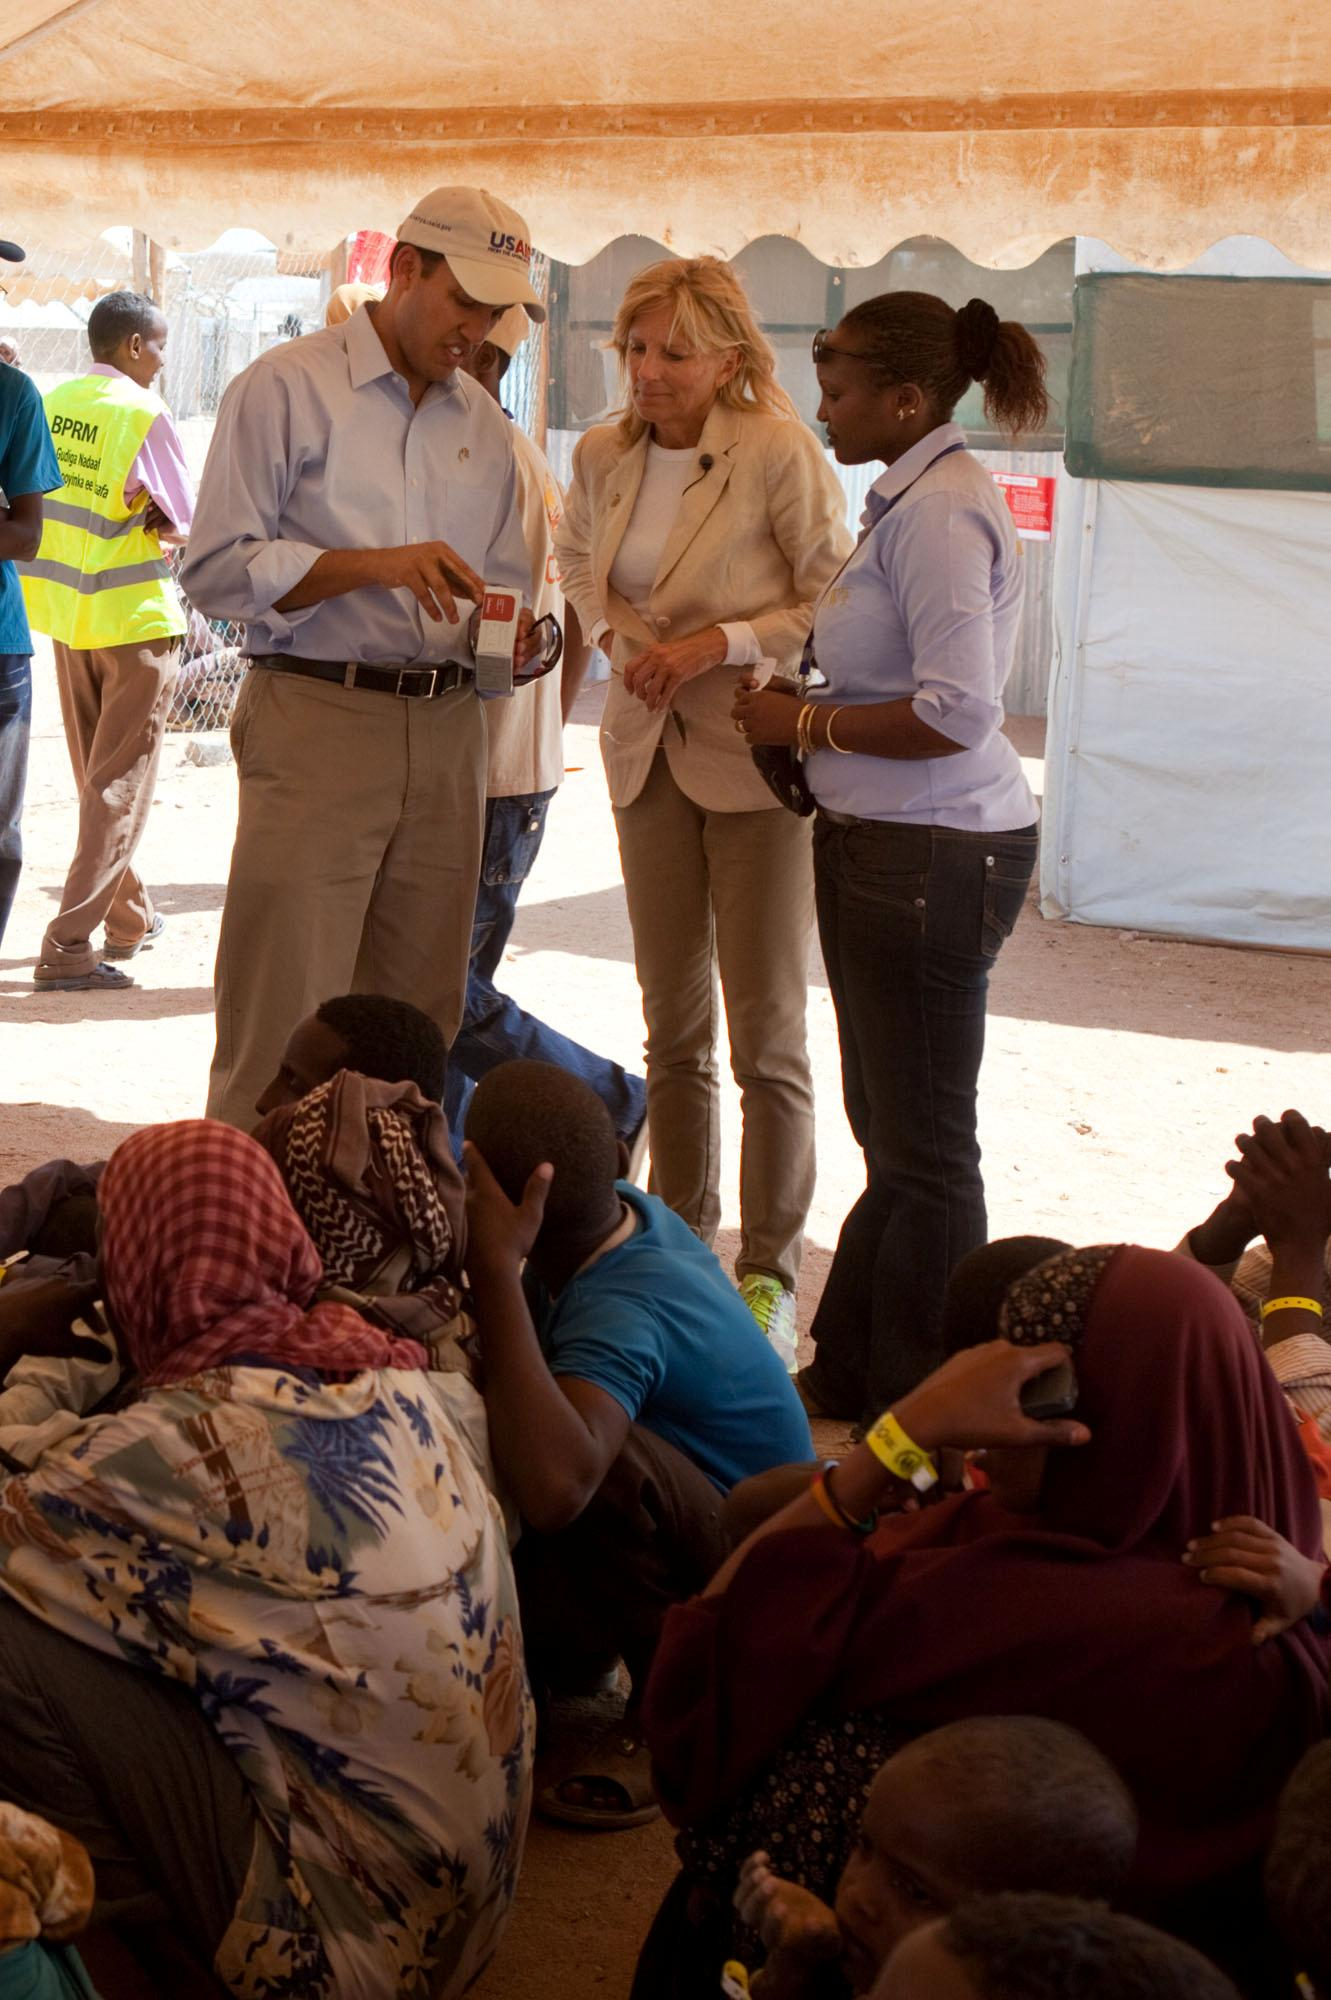 Dr. Jill Biden Talks With USAID Administrator Dr. Raj Shah at Dagahaley Refugee Camp